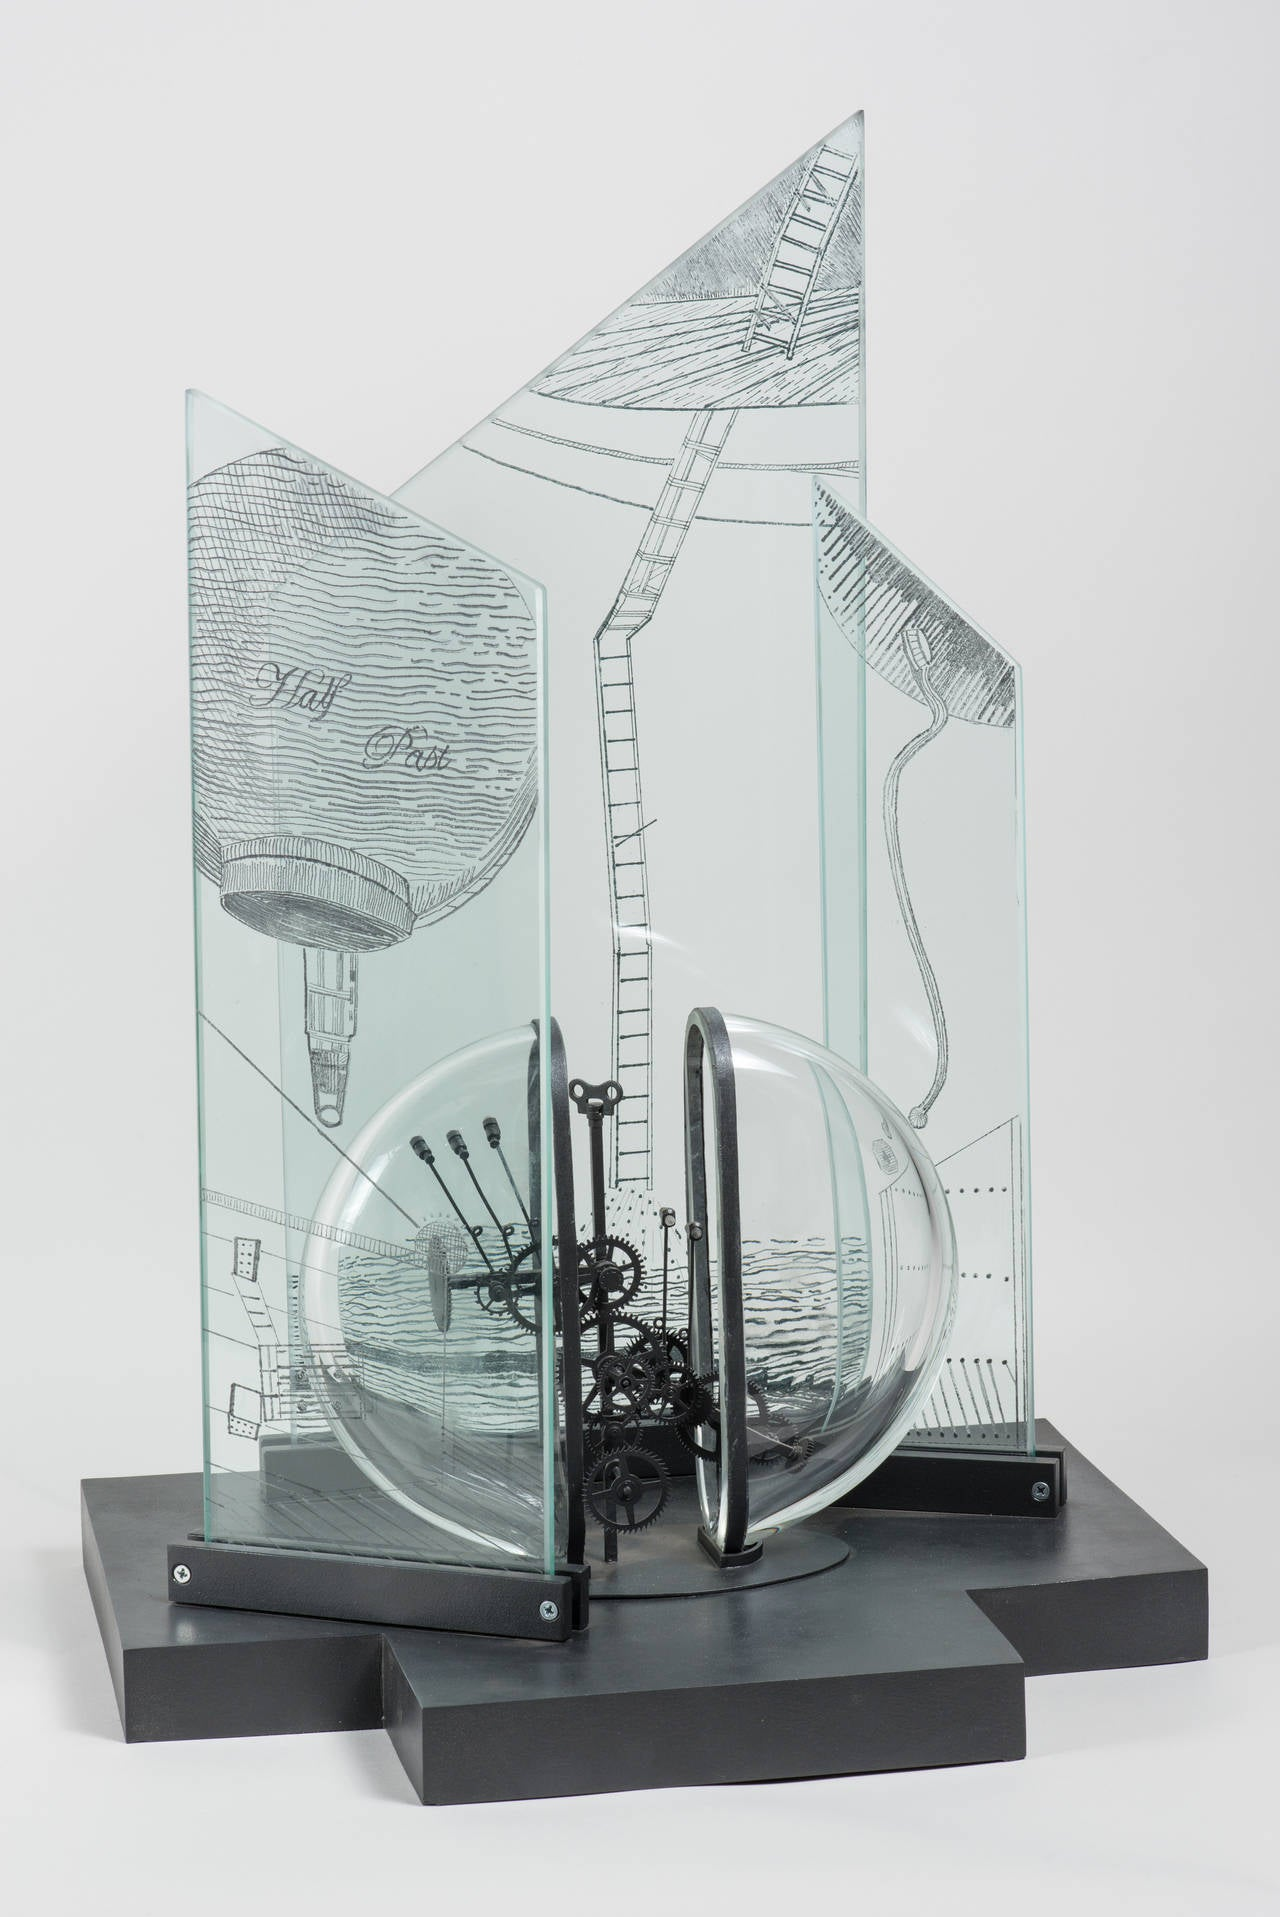 Bella Feldman Abstract Sculpture - Half Past